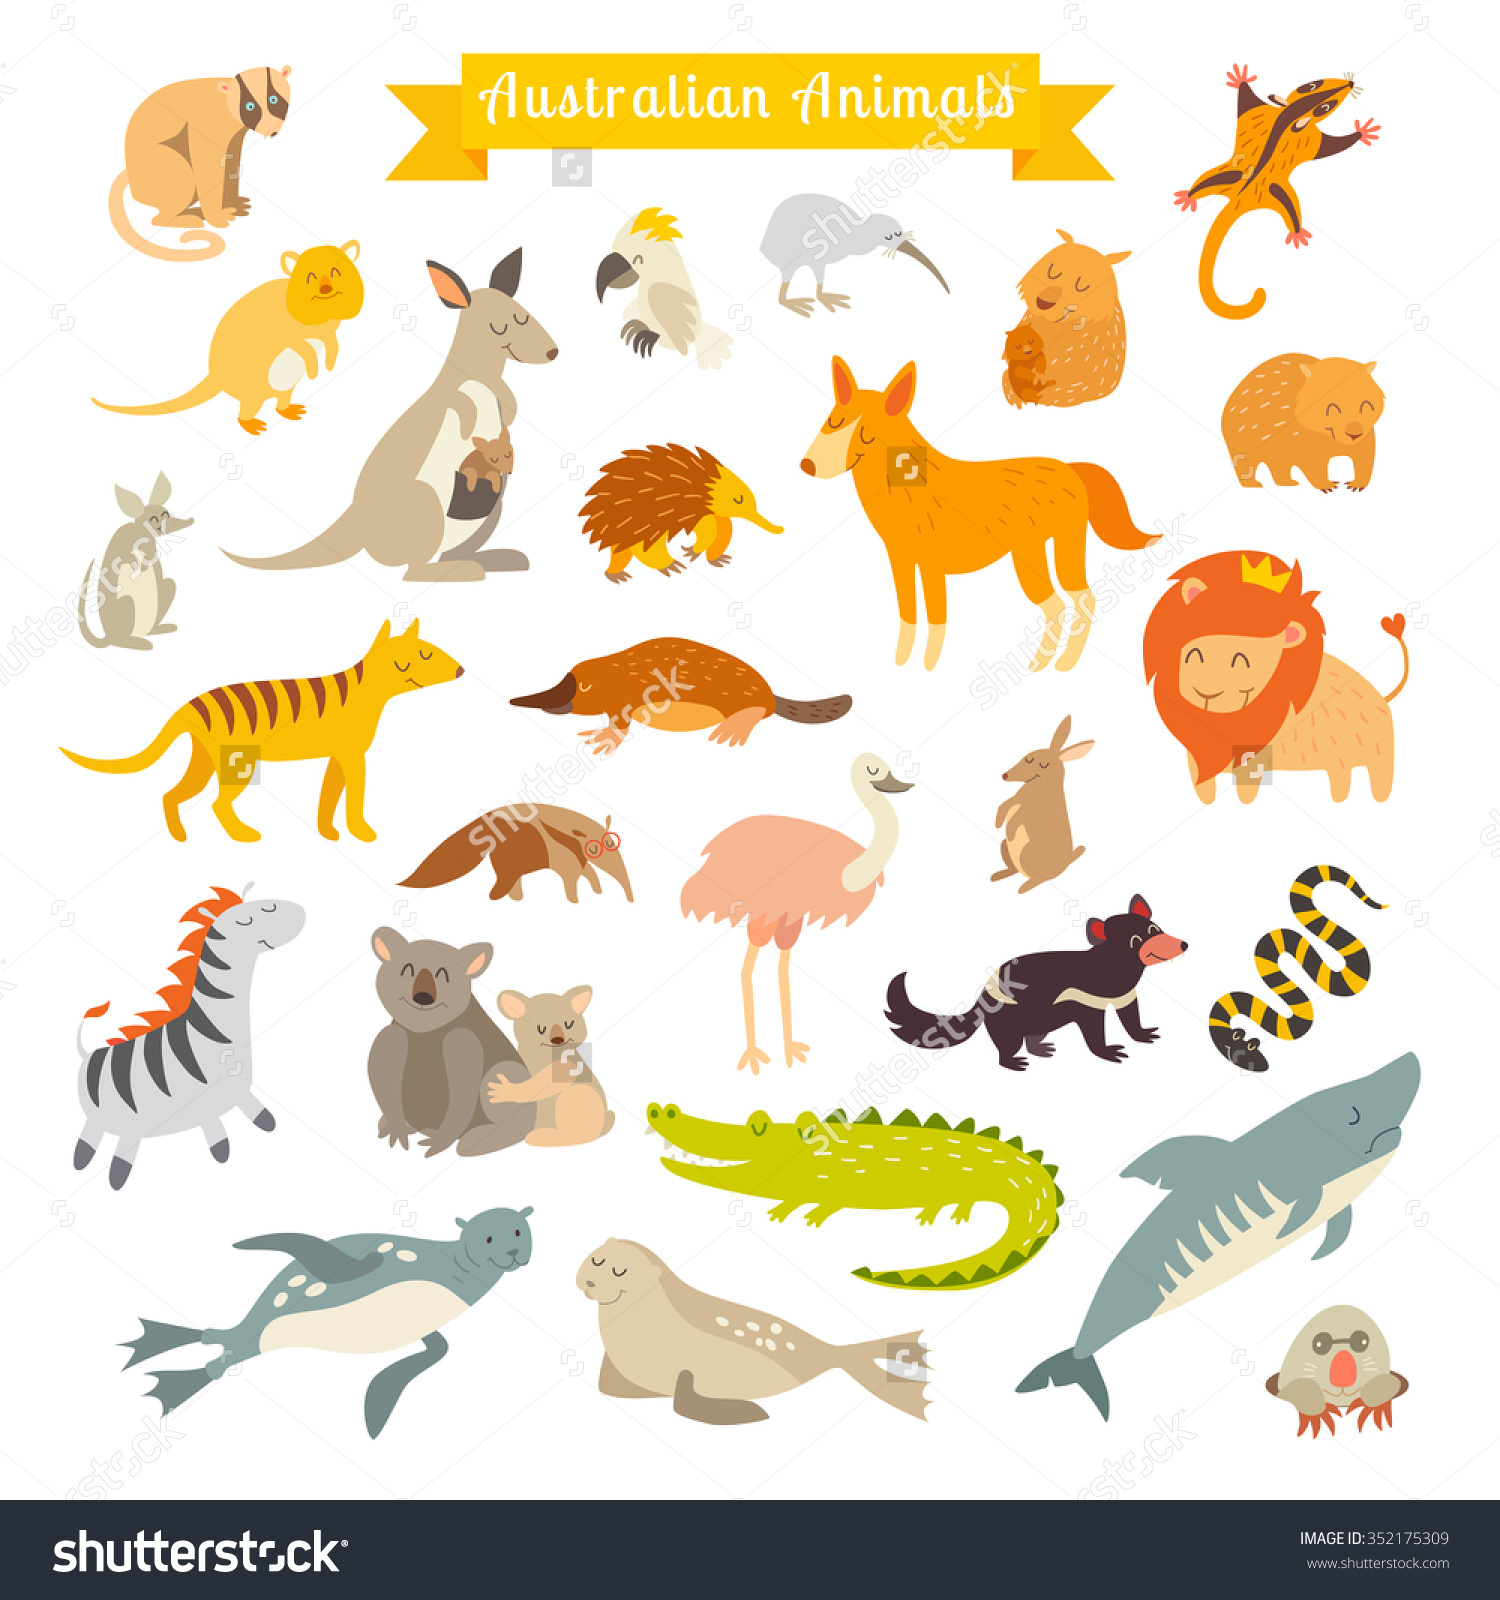 Free Preschool Animals Cliparts Download Free Clip Art